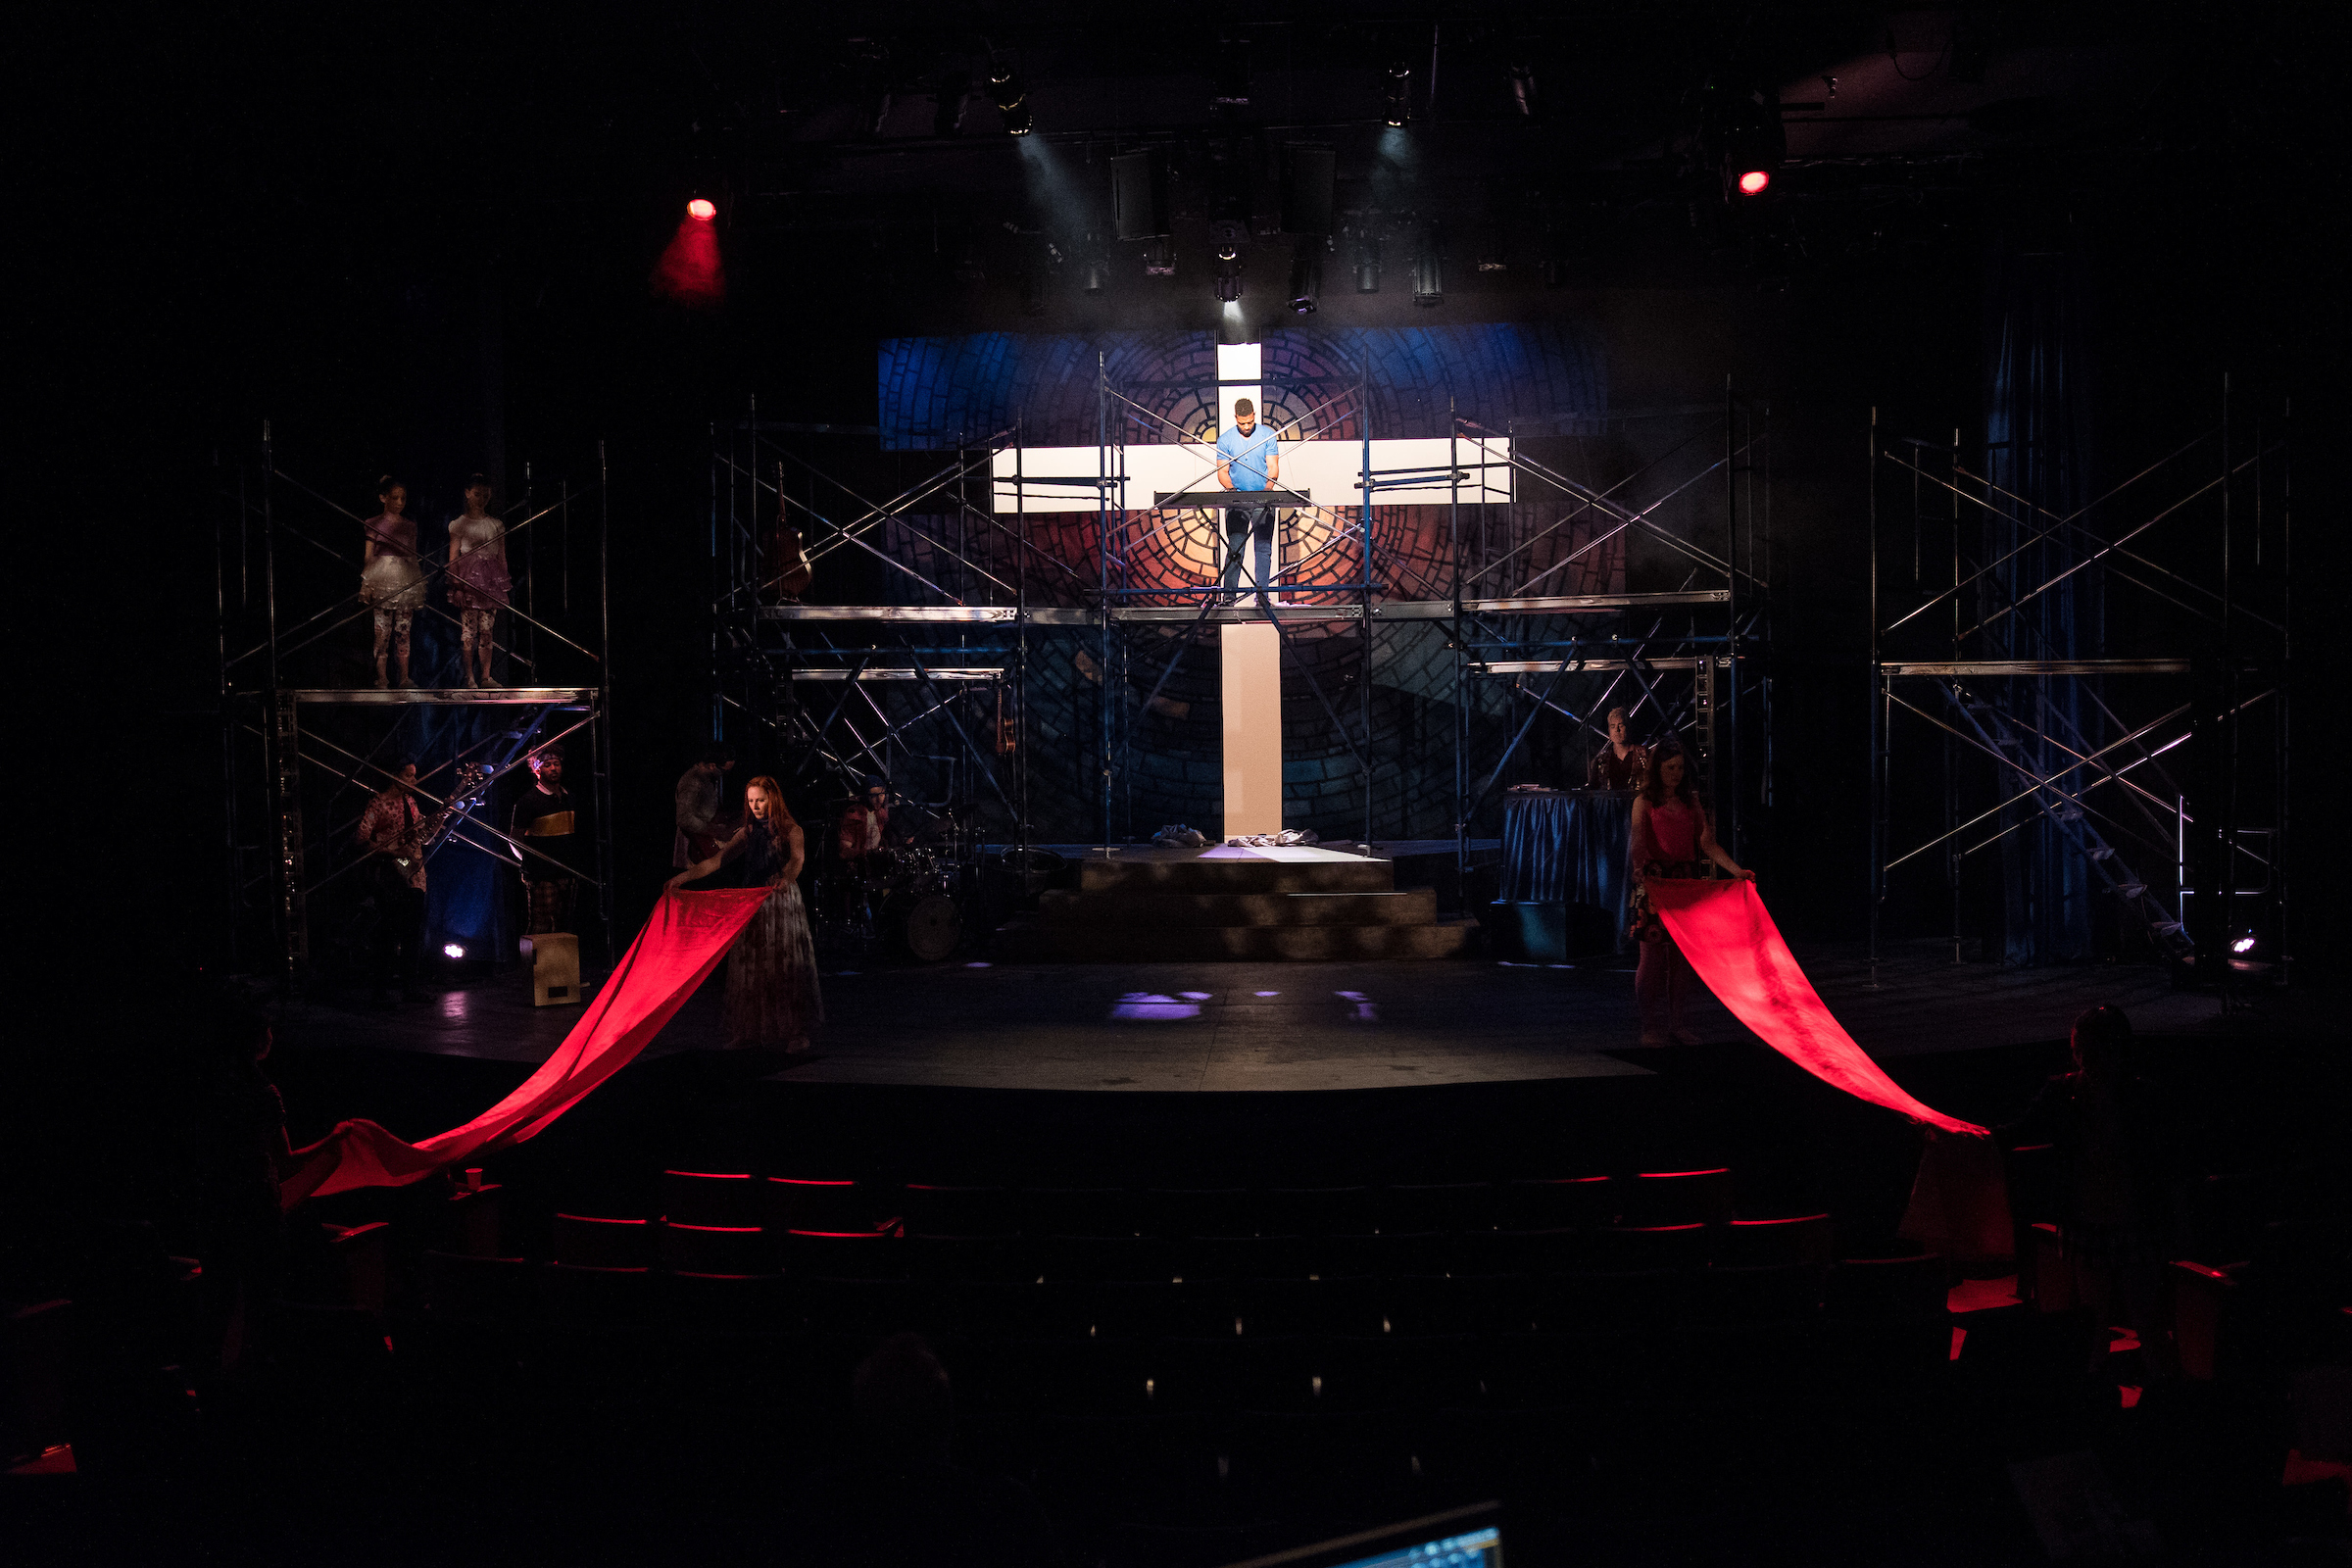 GODSPELL at St. Michael's Playhouse